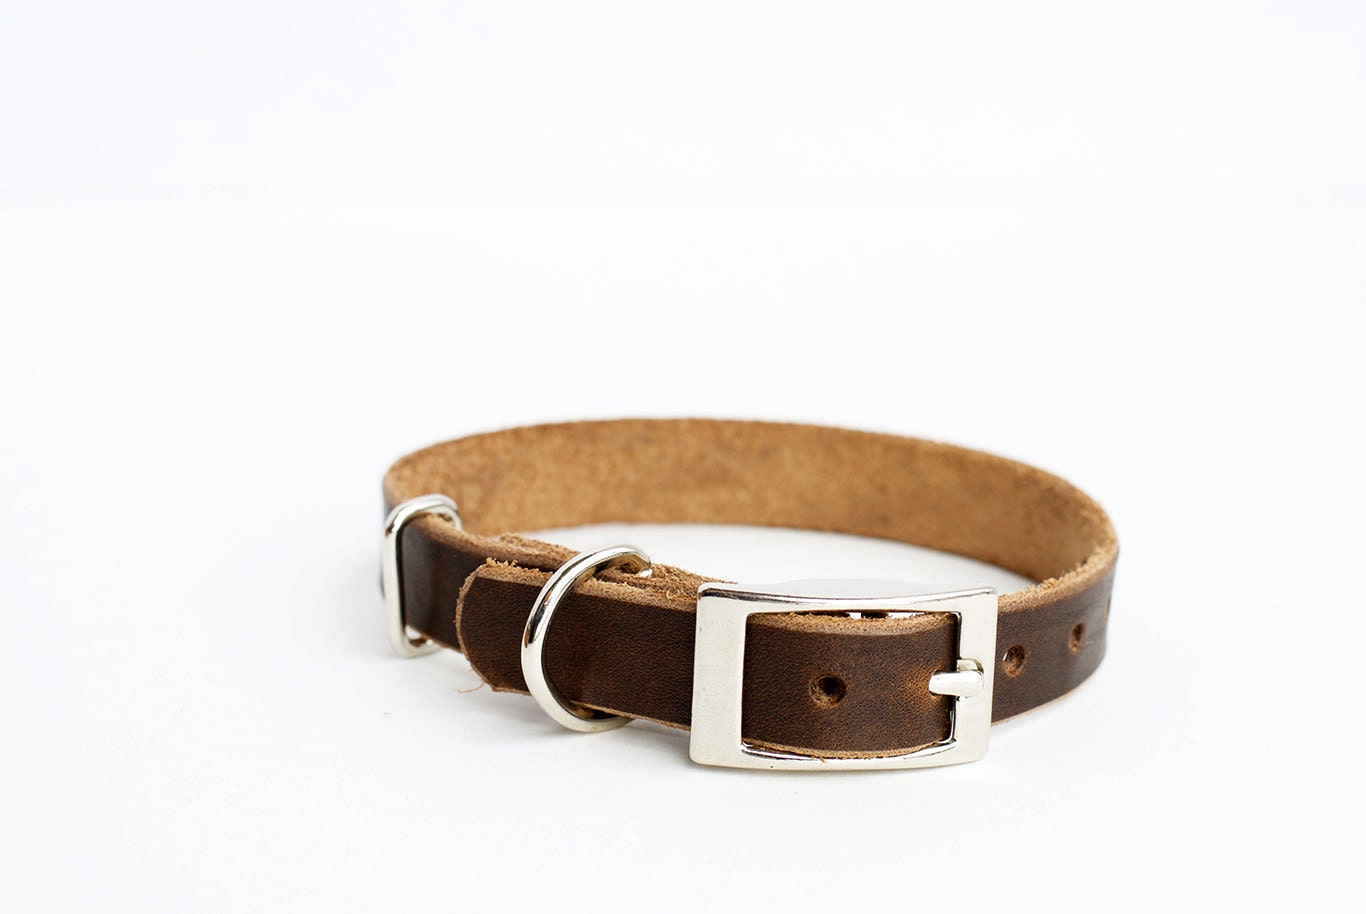 Dog Collar Leather Dog Collar Personalized Leather Dog